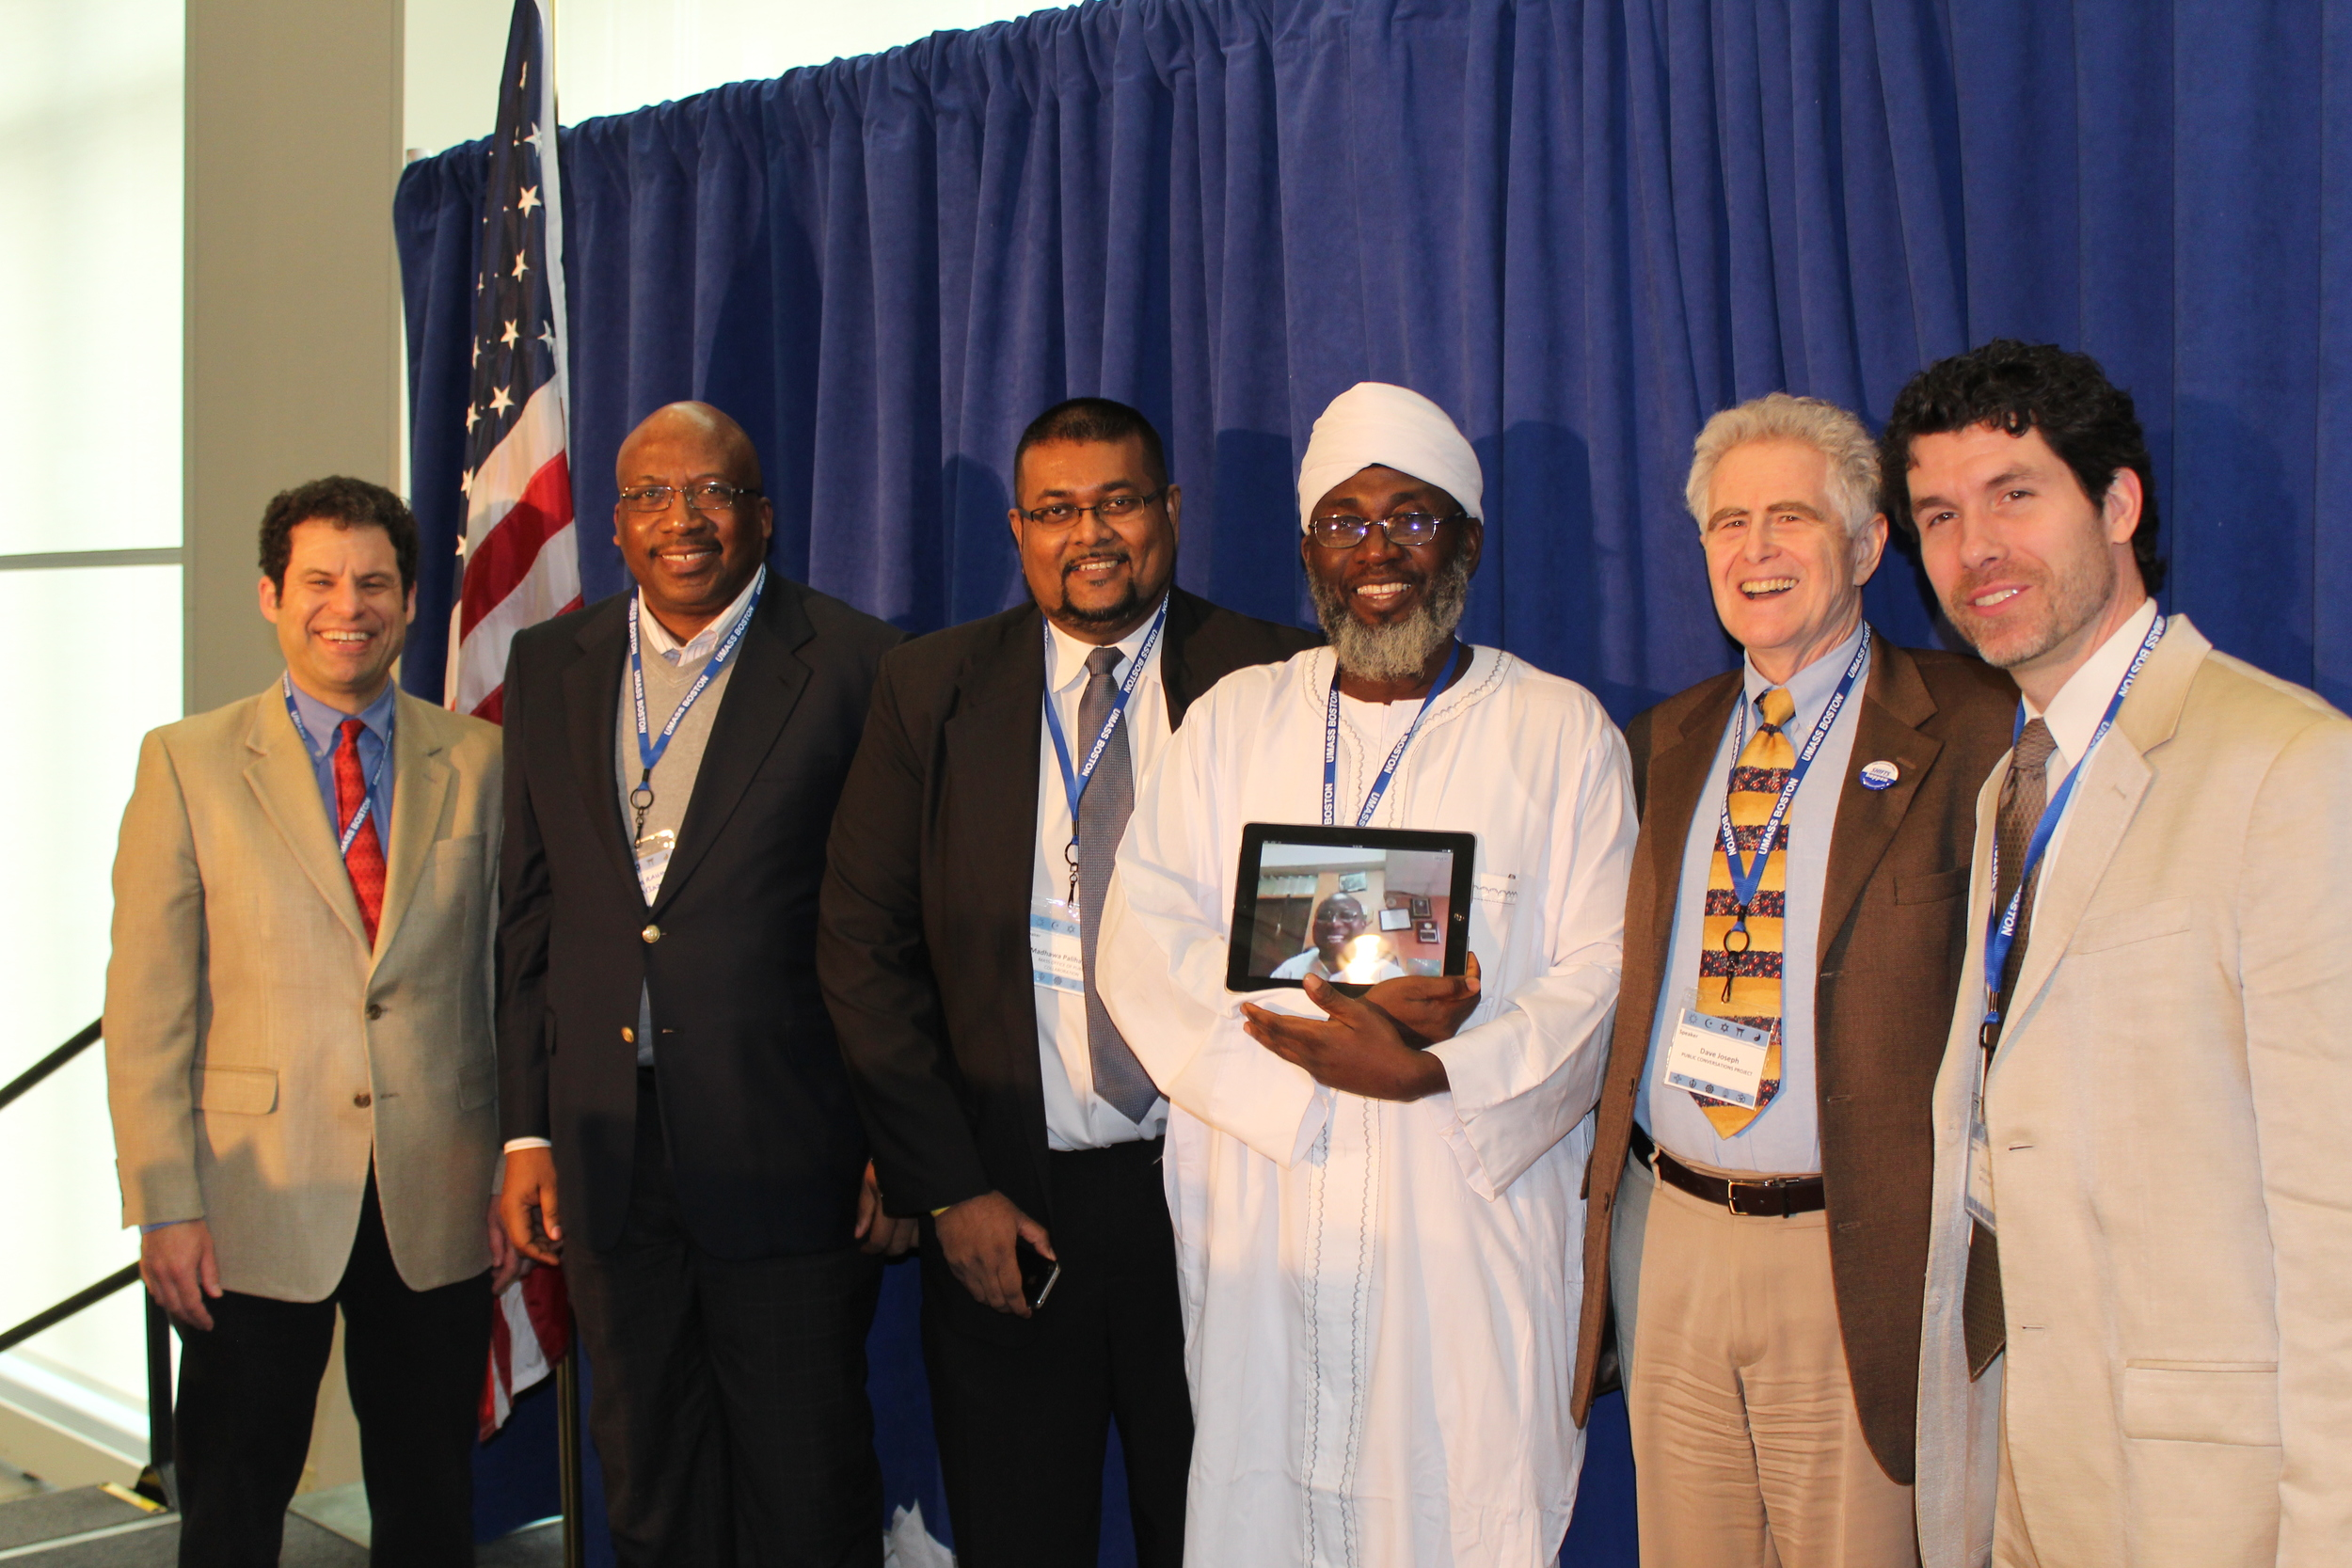 Imam (Dr.) Ashafa at the 2014 Slomoff Symposium, University of Massachusetts Boston